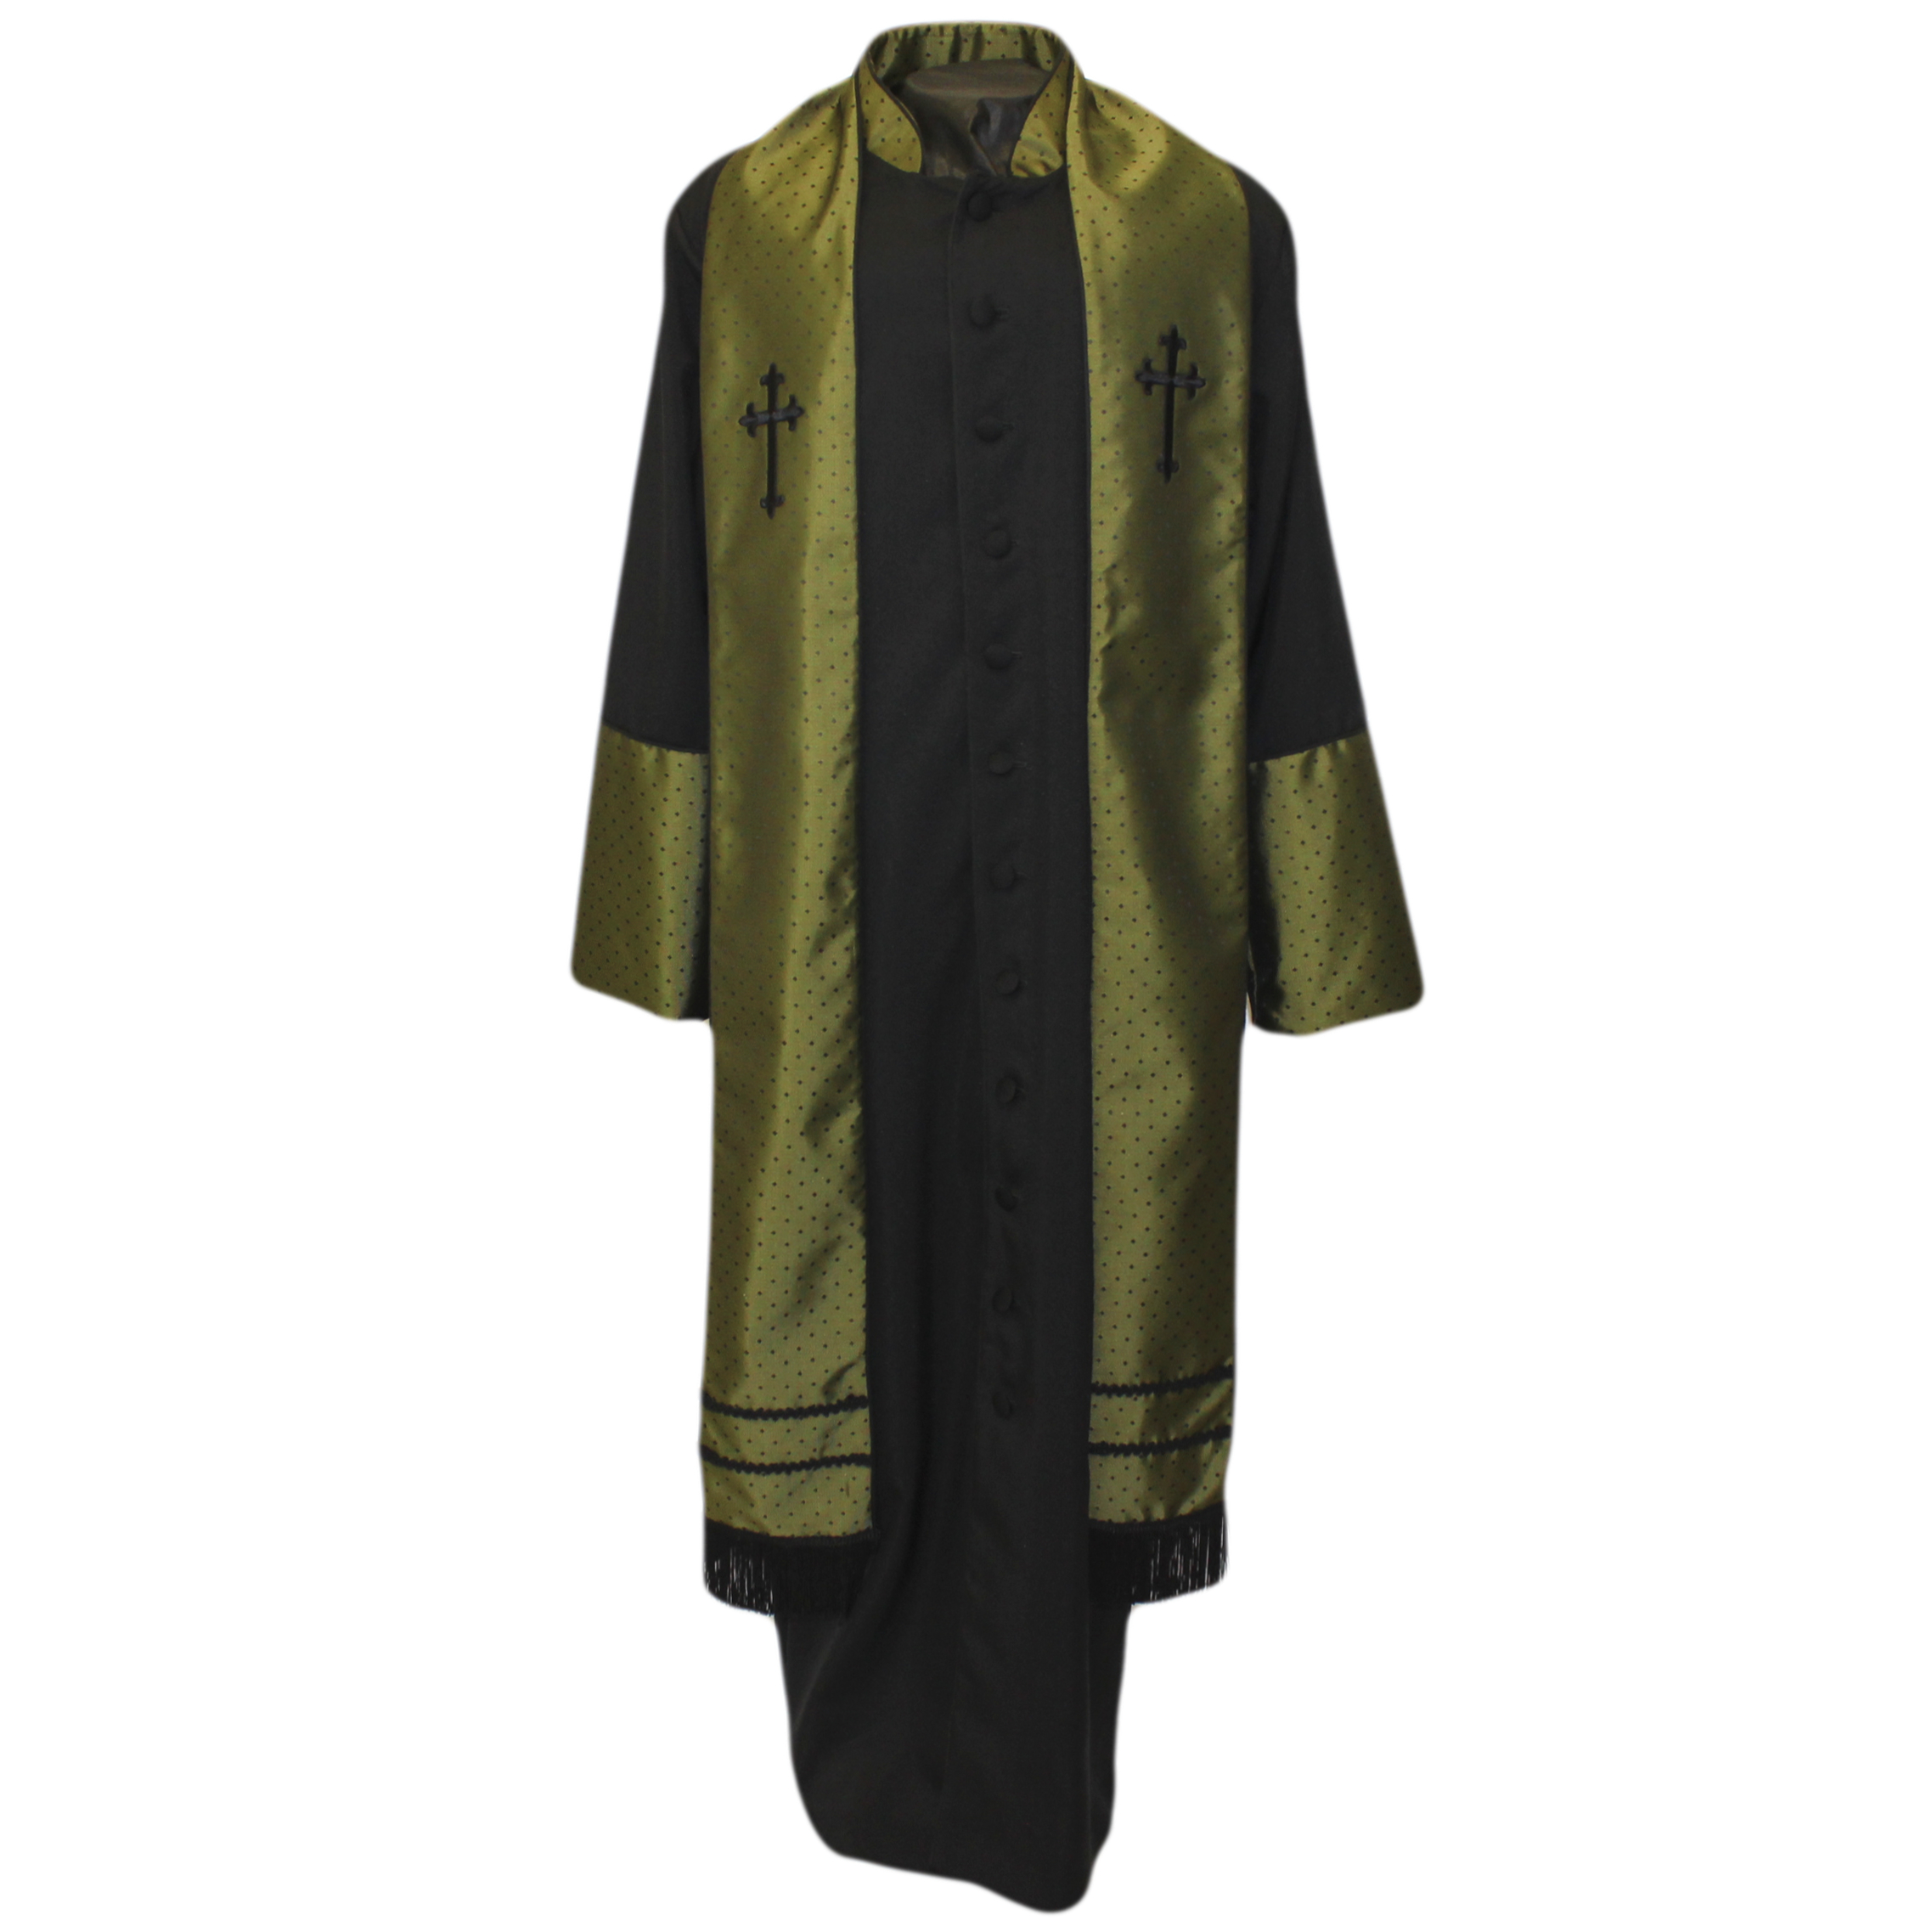 Black and Green Robe 5.jpg